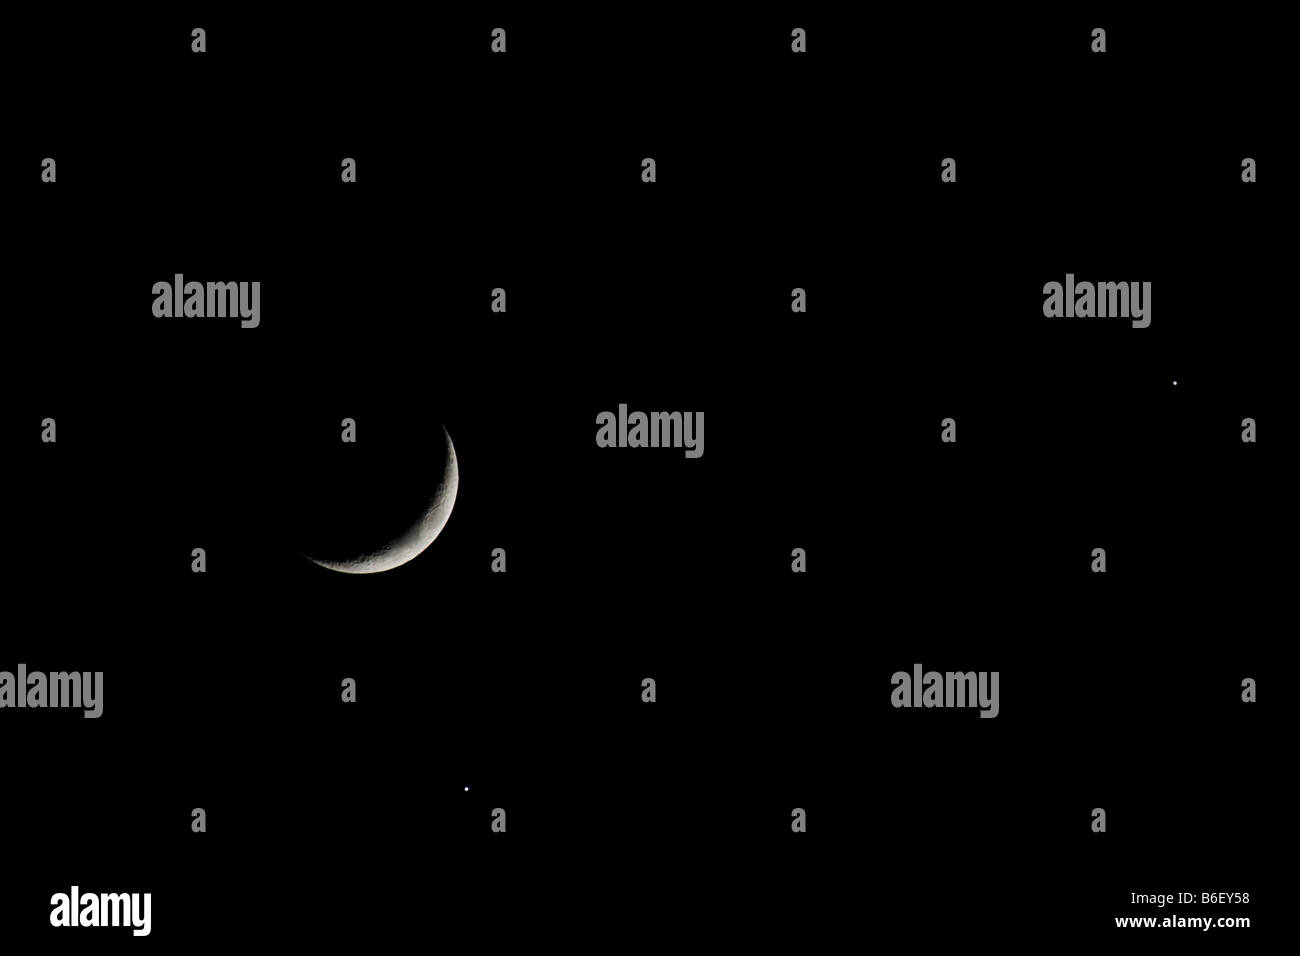 1 Dec 2008 a rare planetary conjunction of Venus and Jupiter appearing close to the moon as viewed from Lisbn Portugal - Stock Image